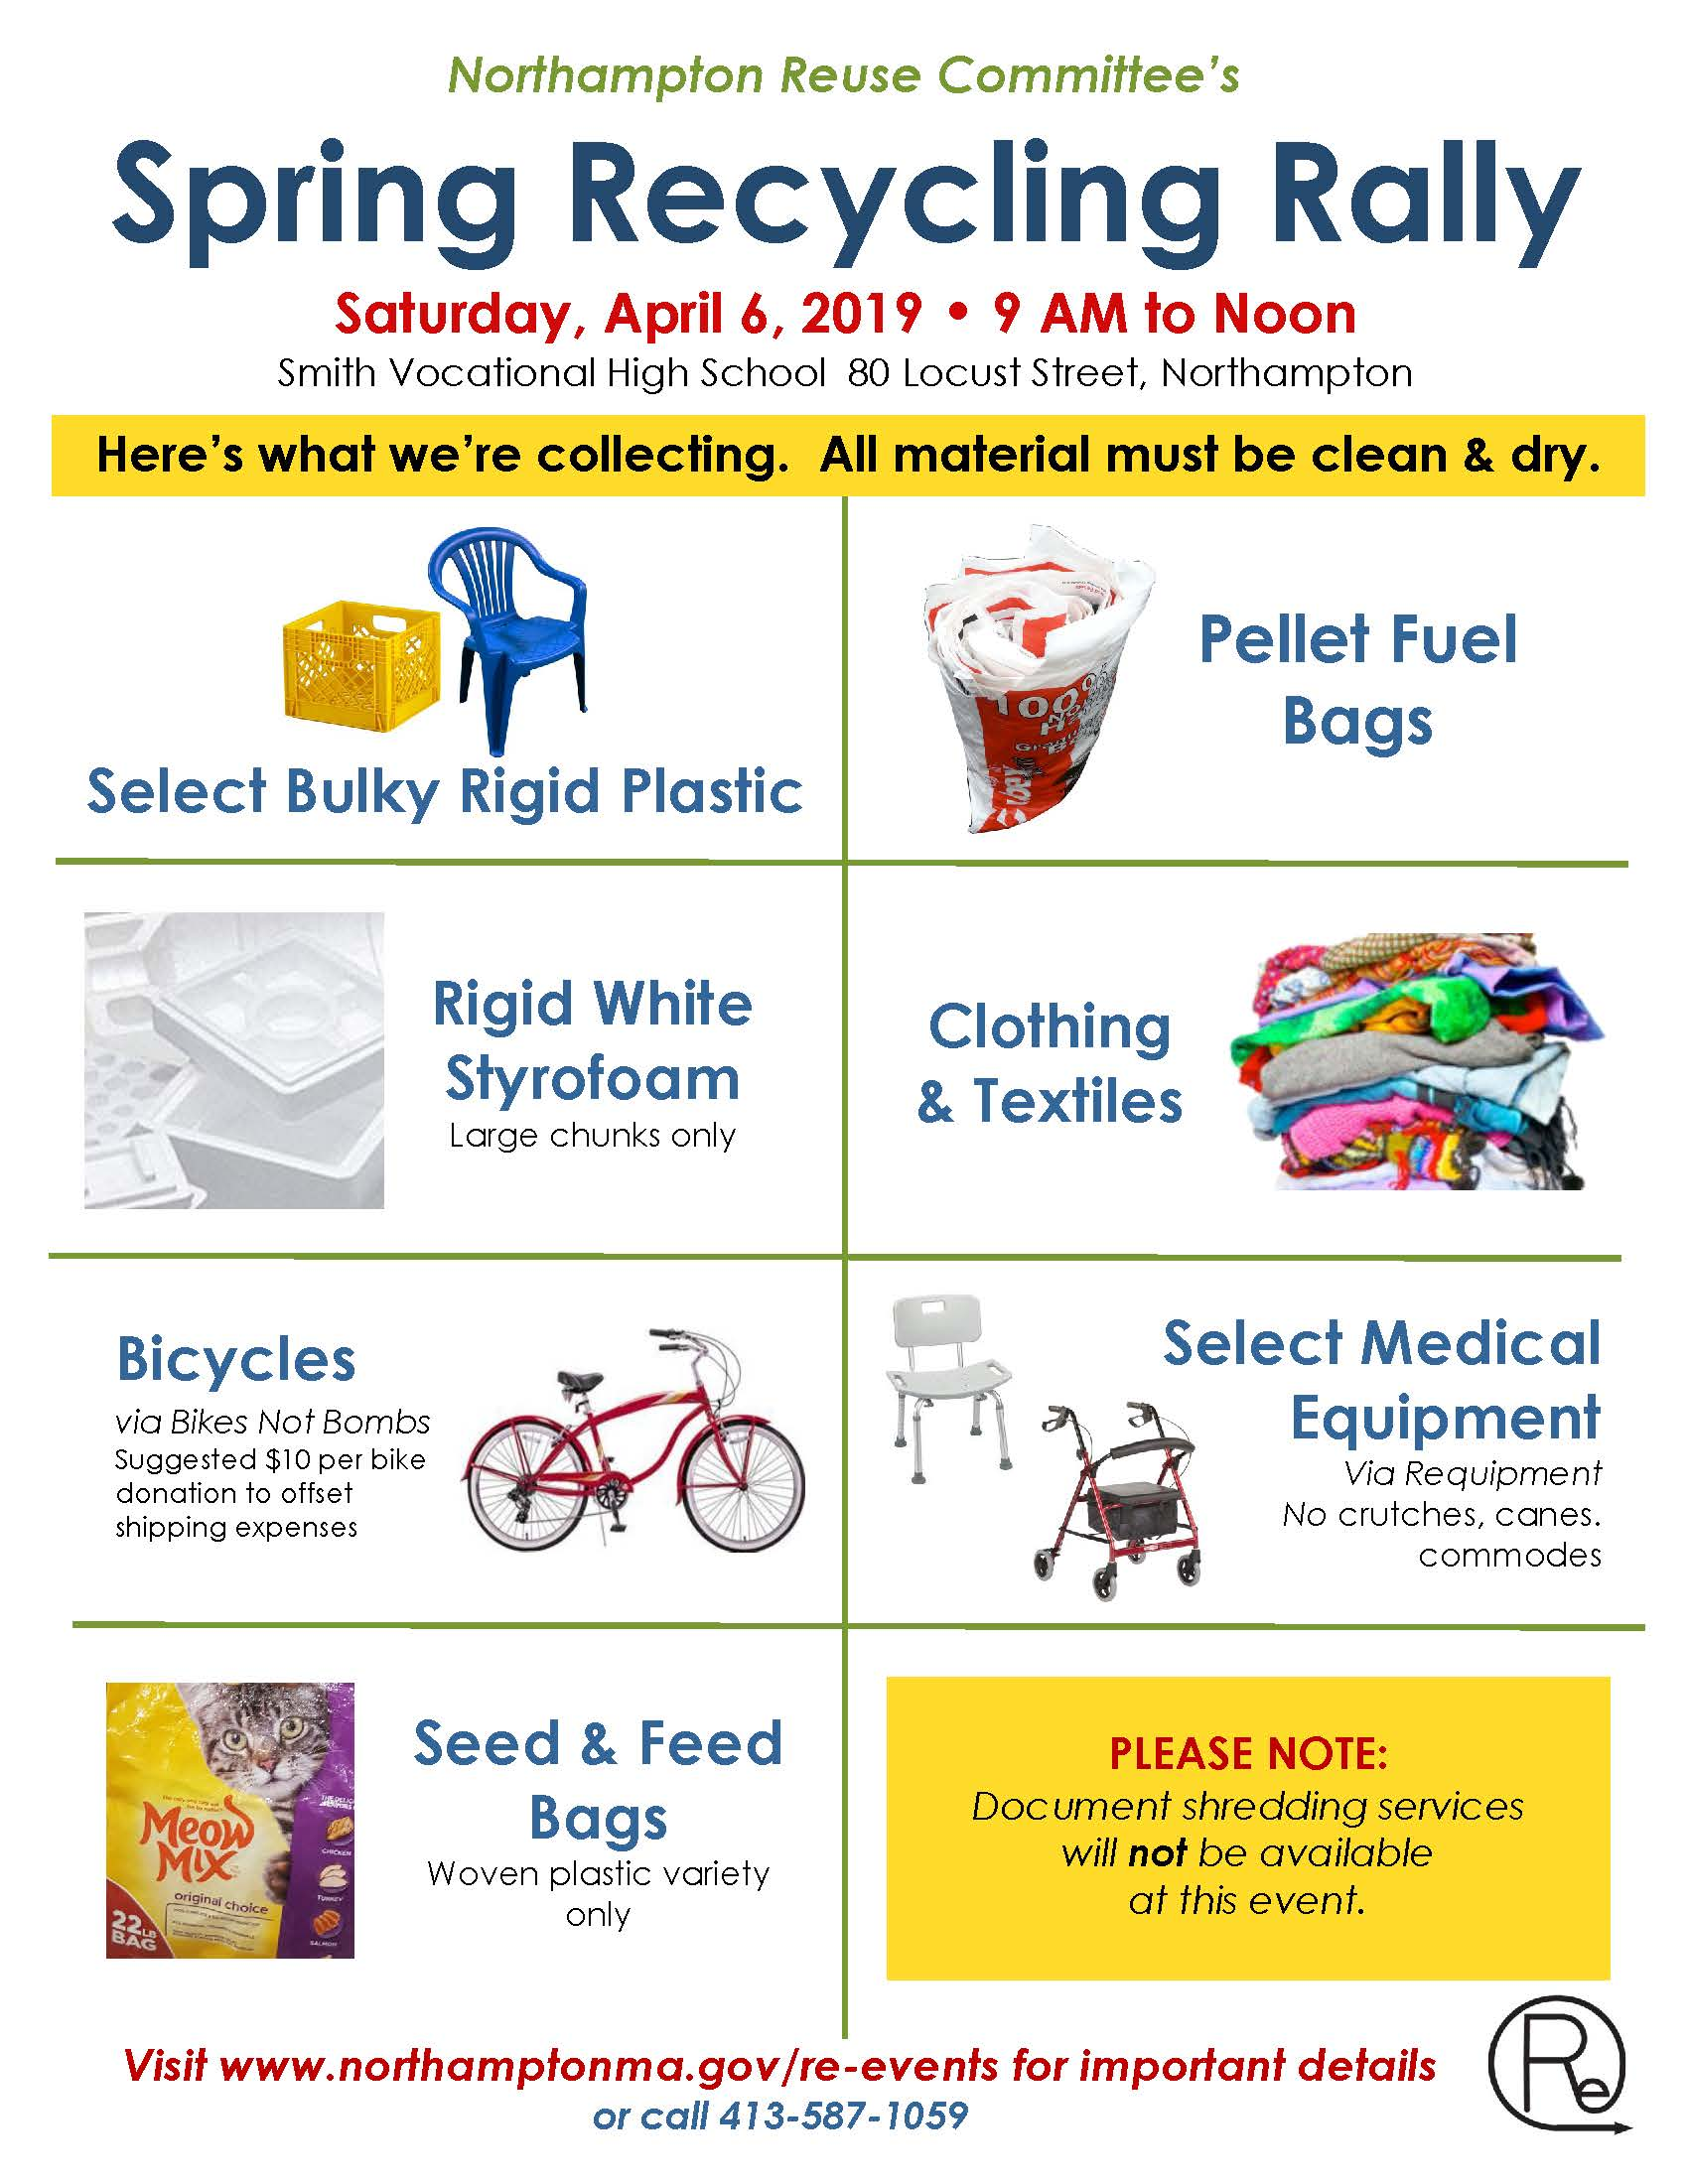 Image of Spring Recycling Rally flyer